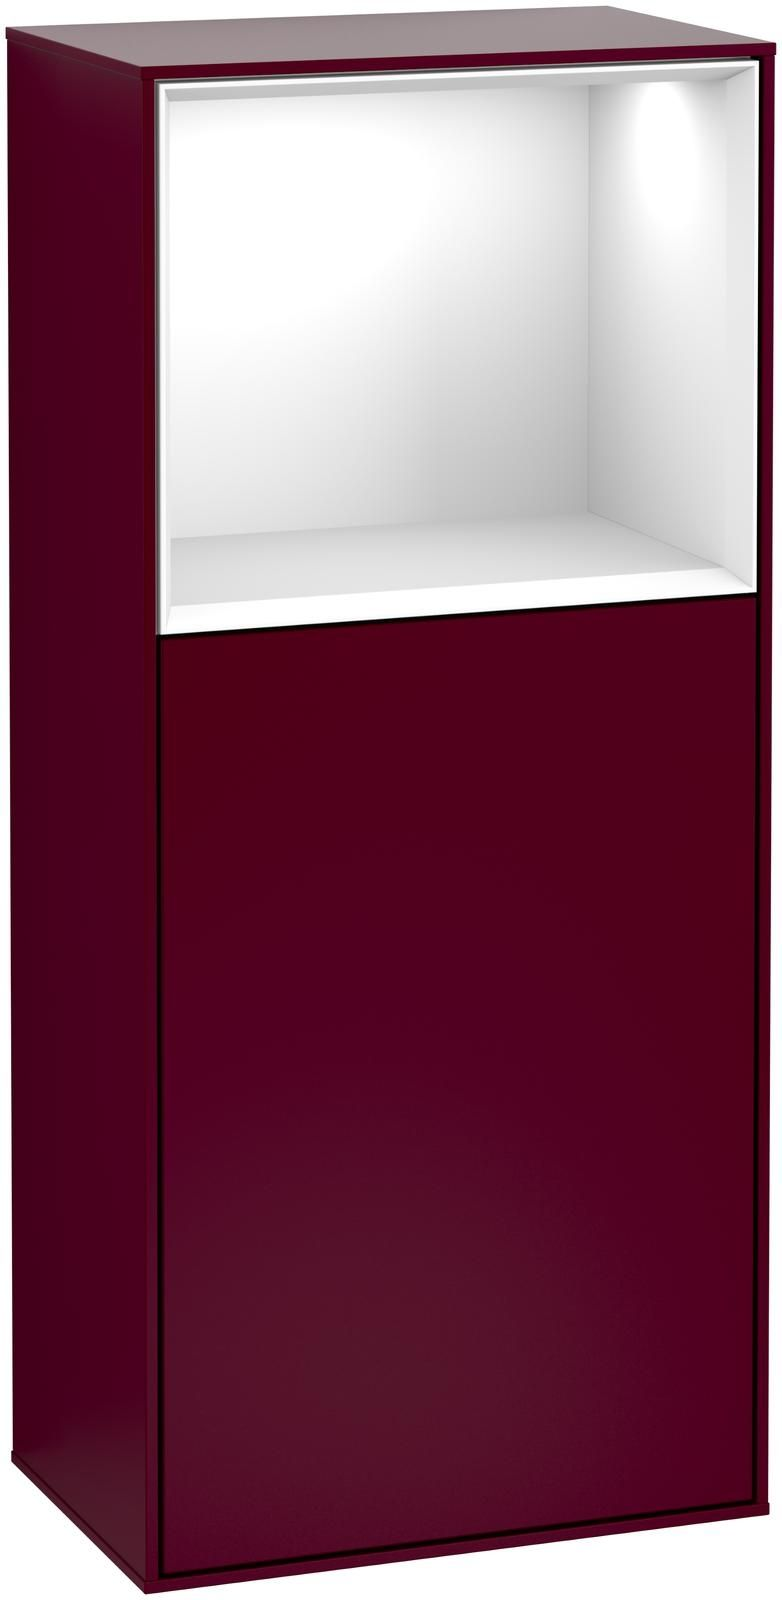 Villeroy & Boch Finion F52 Seitenschrank mit Regalelement 1 Tür Anschlag links LED-Beleuchtung B:41,8xH:93,6xT:27cm Front, Korpus: Peony, Regal: Glossy White Lack F520GFHB